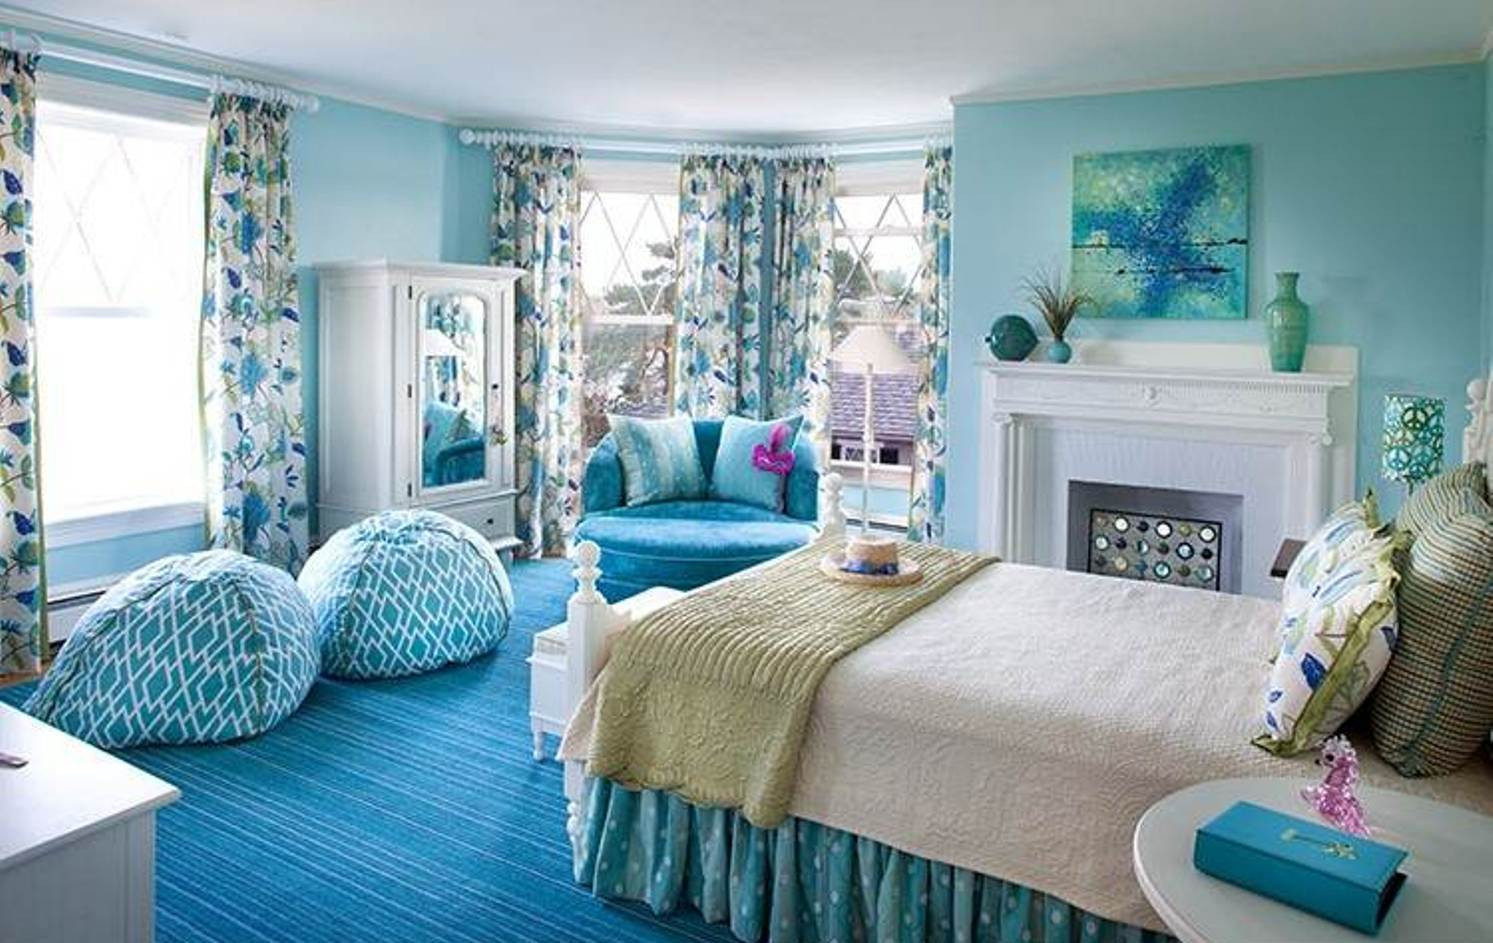 Excellent Bedrooms with Vintage touch Bedroom Design Ideas for Girls